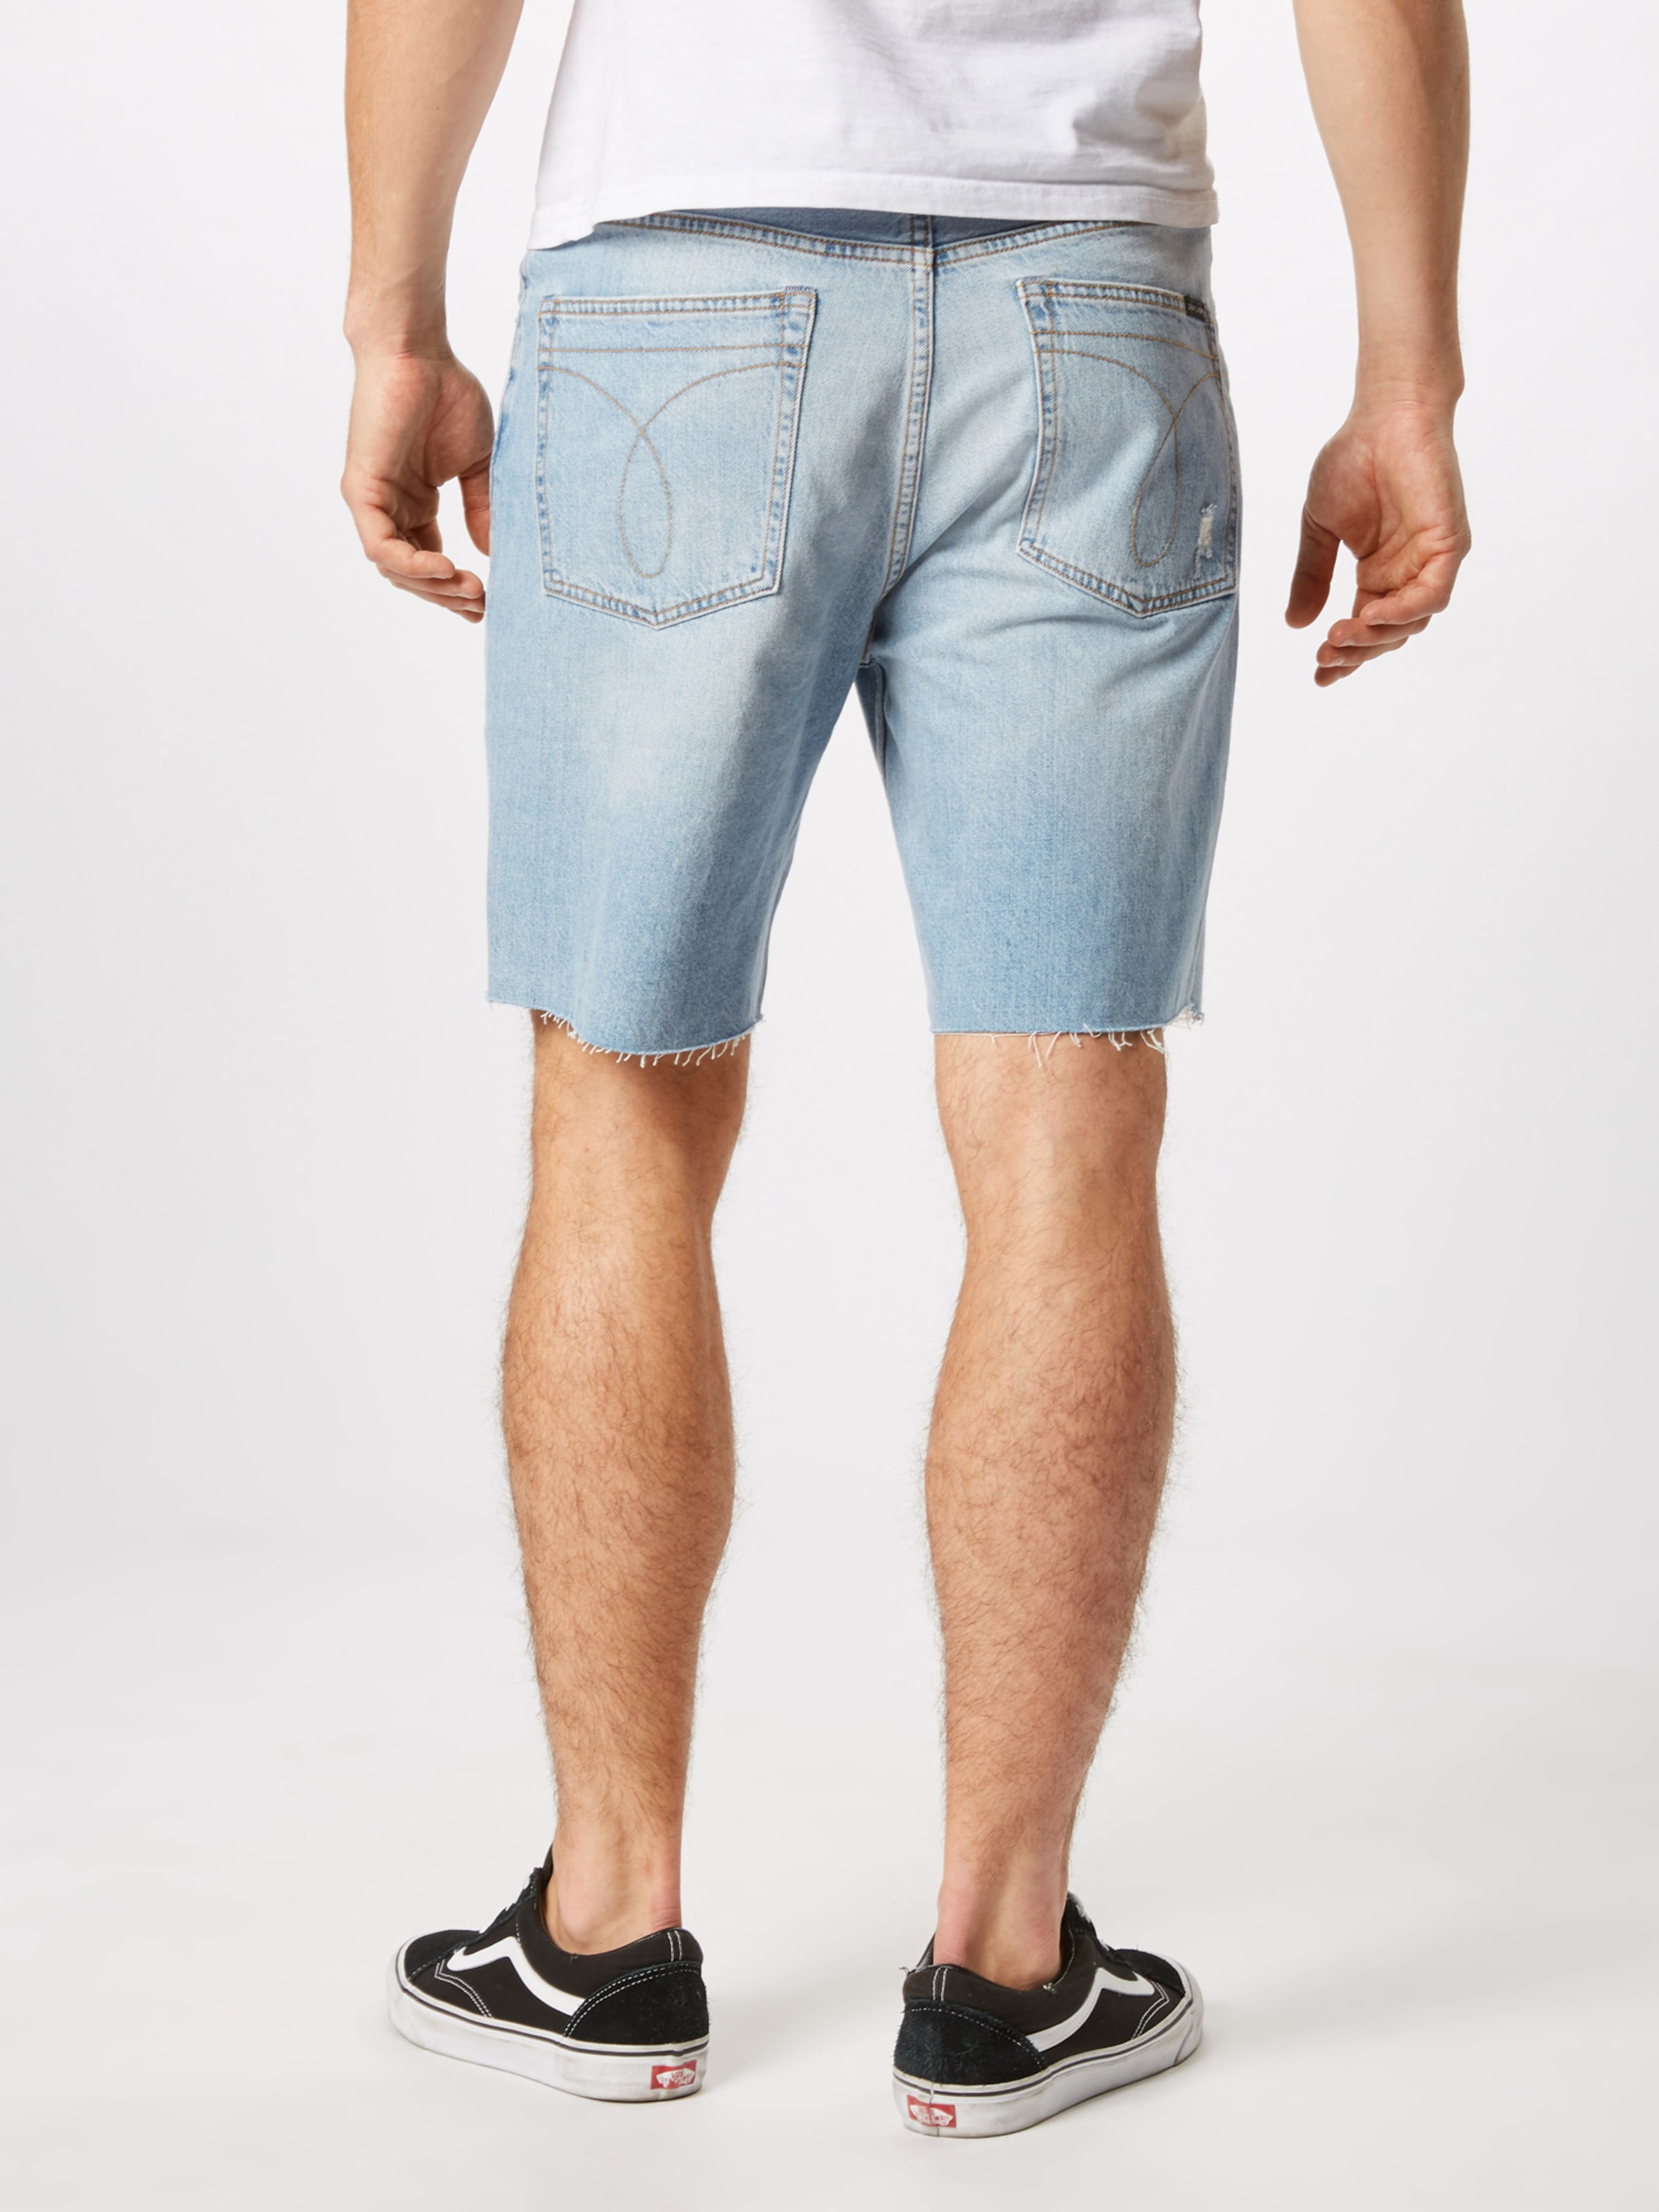 Denim Blue Shorts In Calvin Klein Jeans kOPZuiX